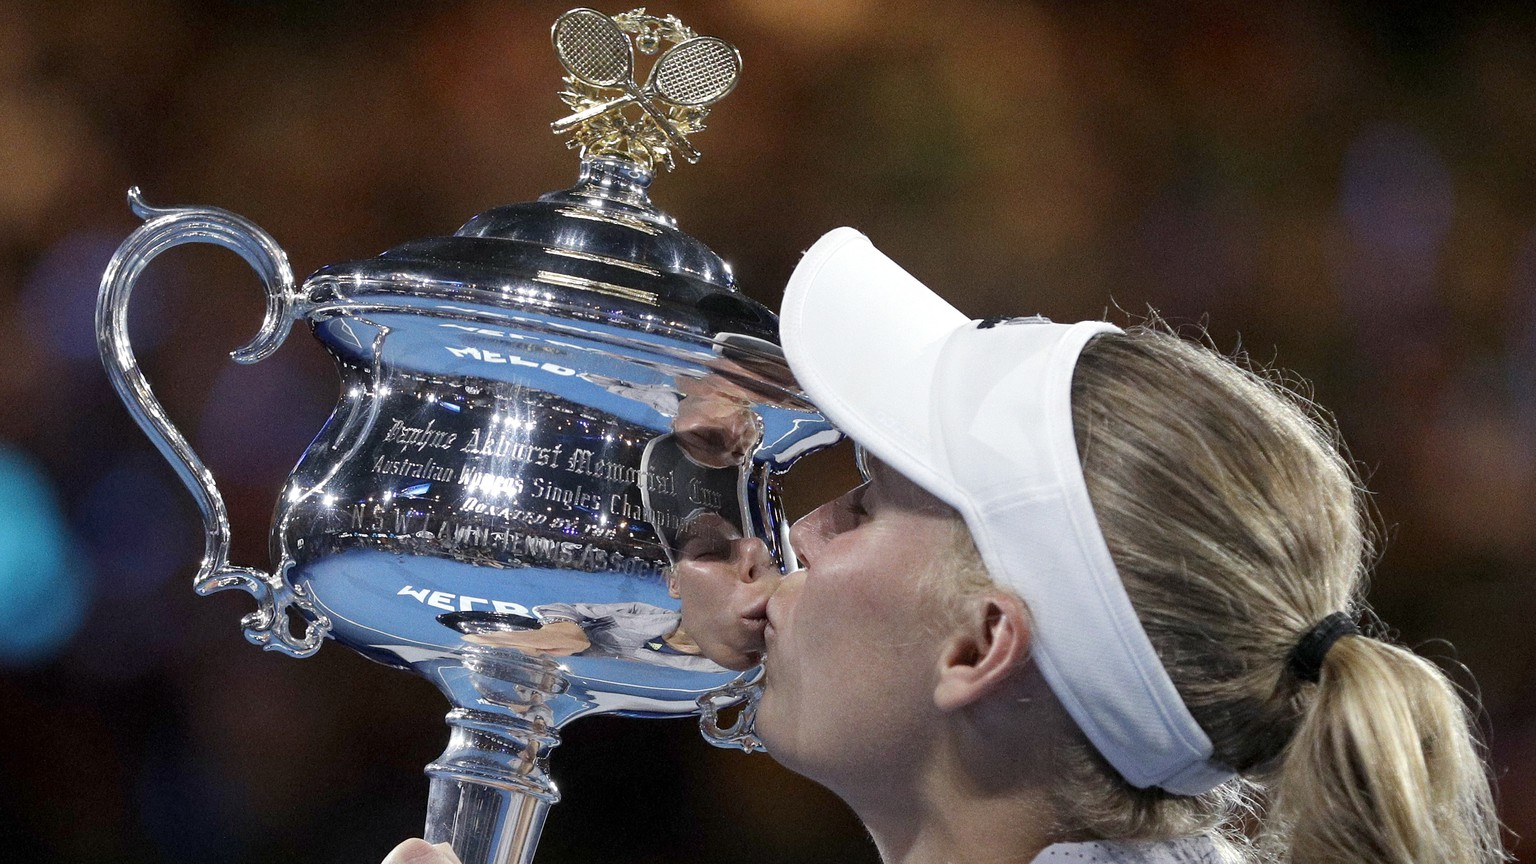 Denmark's Caroline Wozniacki kisses her trophy after defeating Romania's Simona Halep in the women's singles final at the Australian Open tennis championships in Melbourne, Australia, Saturday, Jan. 27, 2018. (AP Photo/Dita Alangkara)